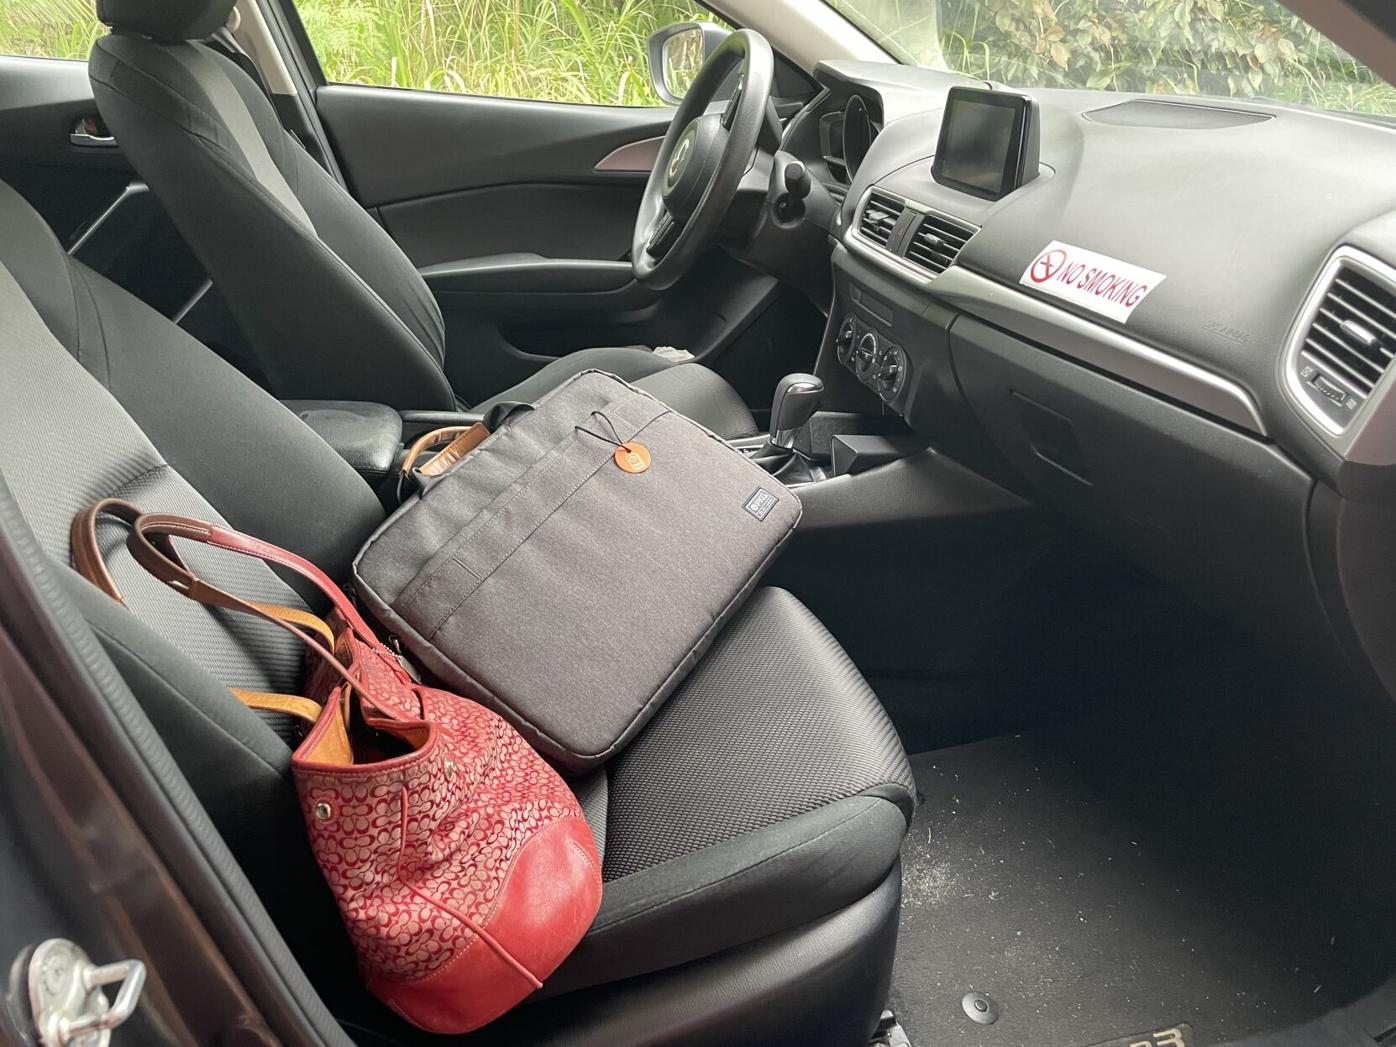 Vehicle theft month 2